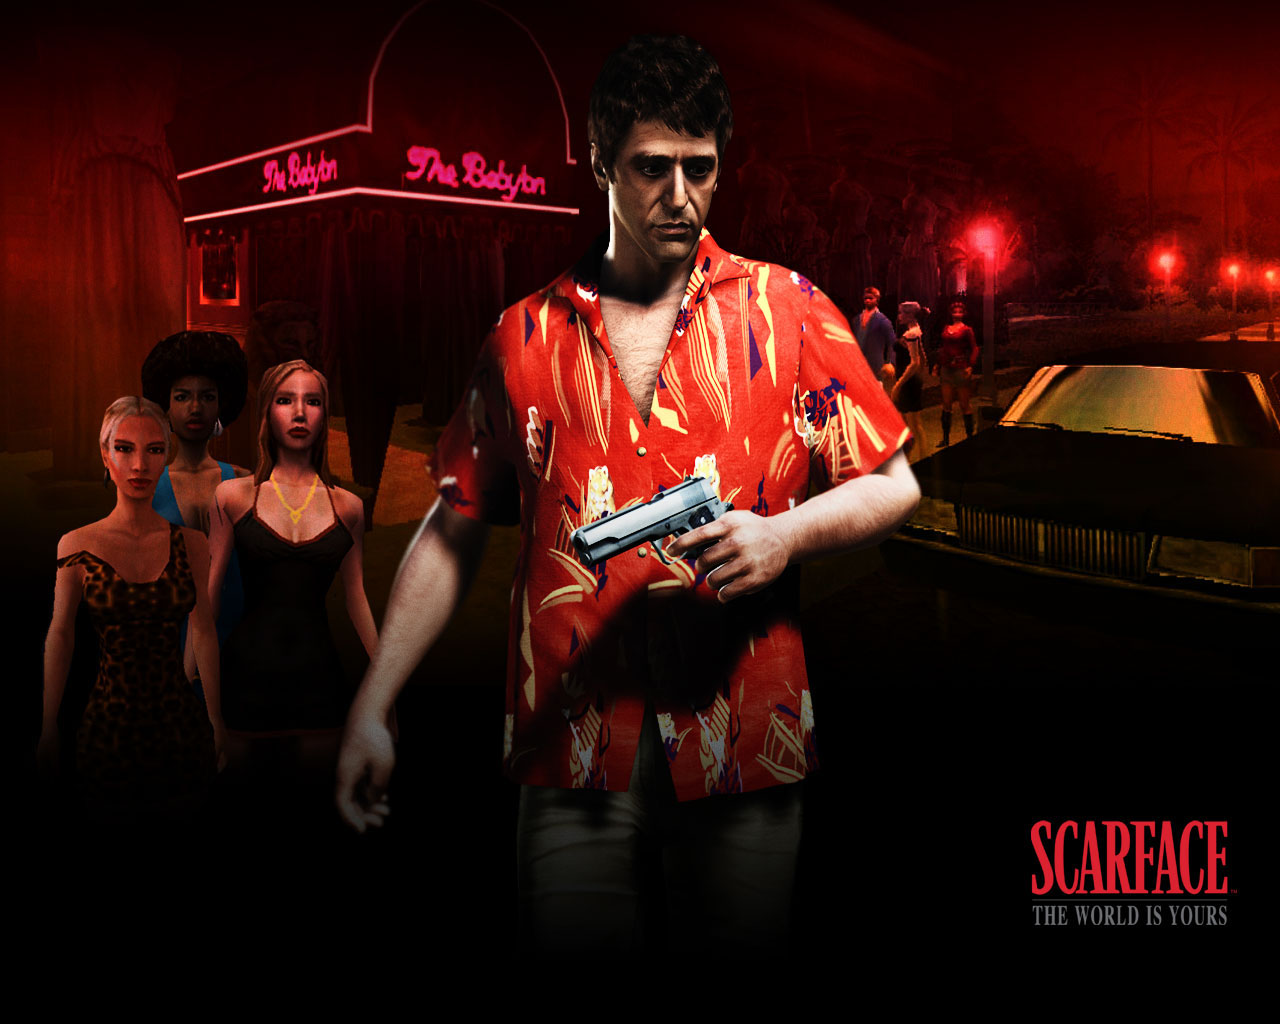 Free Download Scarface The World Is Yours Wallpapers 1280x1024